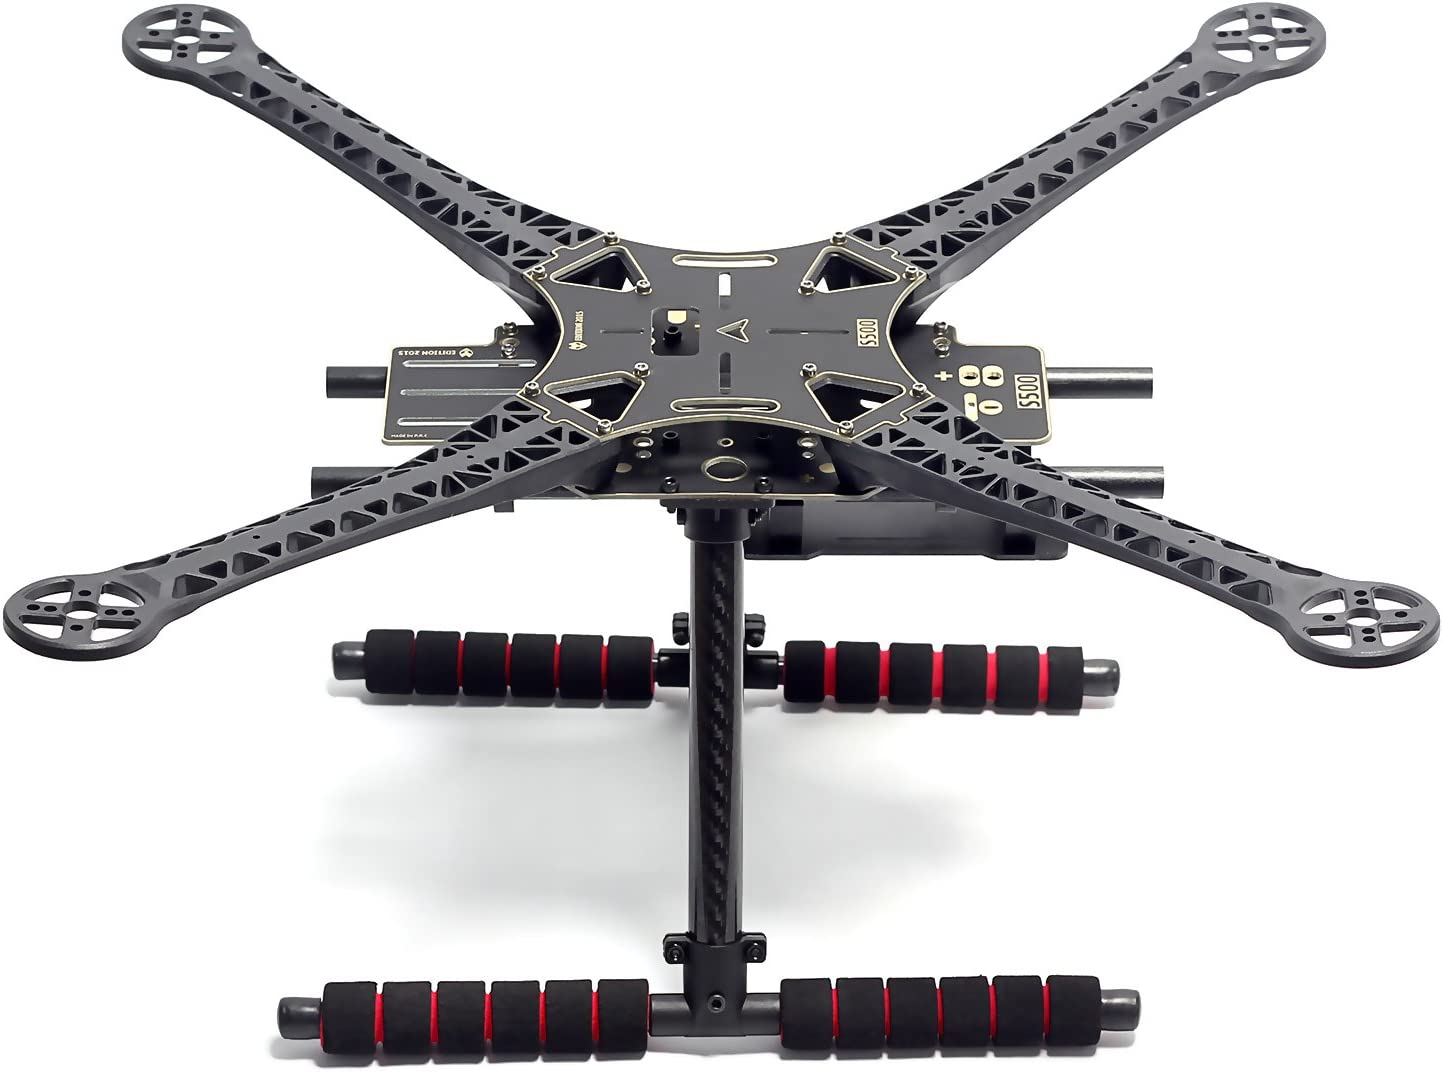 Readytosky S500 Quadcopter Frame Stretch X FPV Racing Drone Frame Kit PCB Version with Carbon Fiber Landing Gear